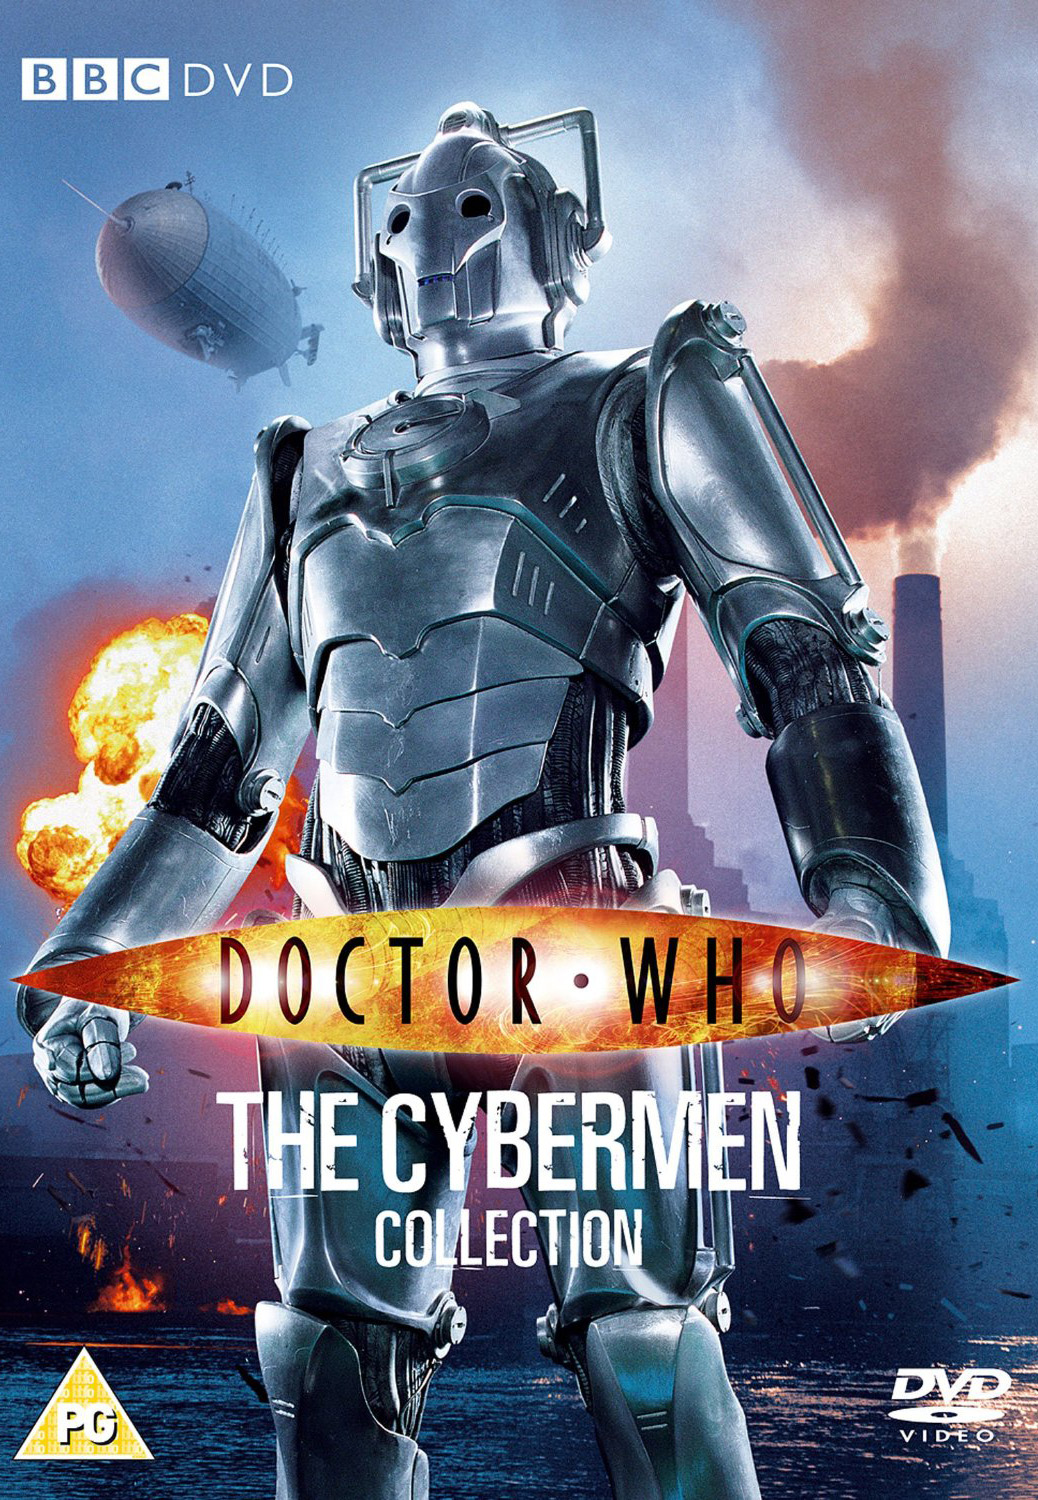 The Cybermen Collection